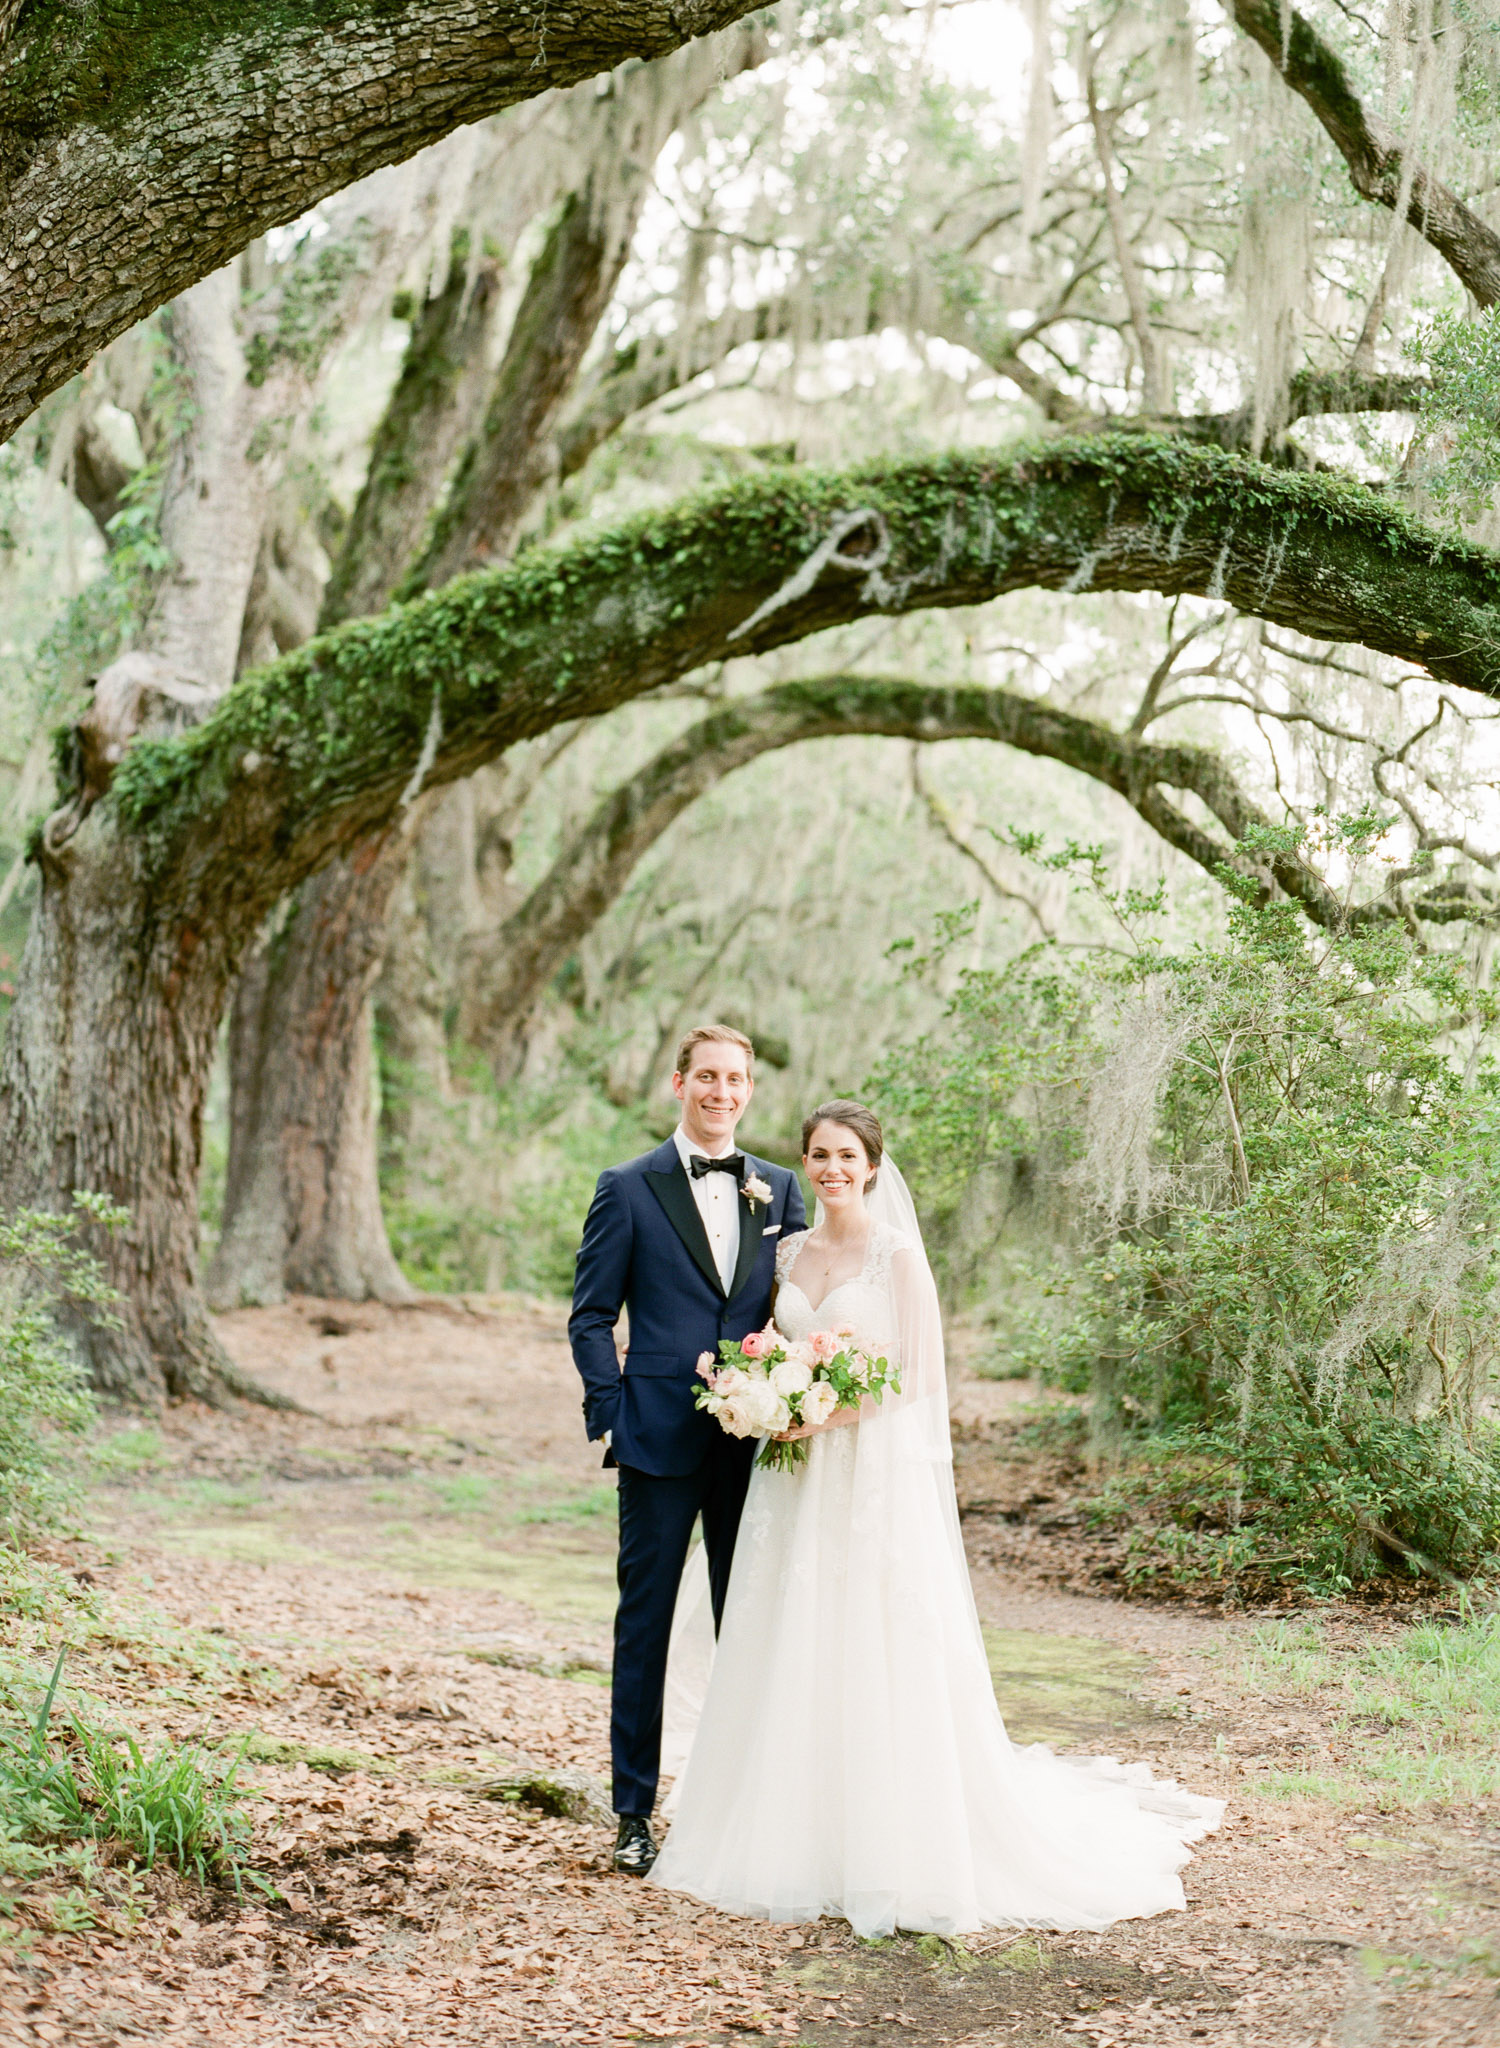 Charleston-Wedding-Photographer-The-Cedar-Room-44.jpg